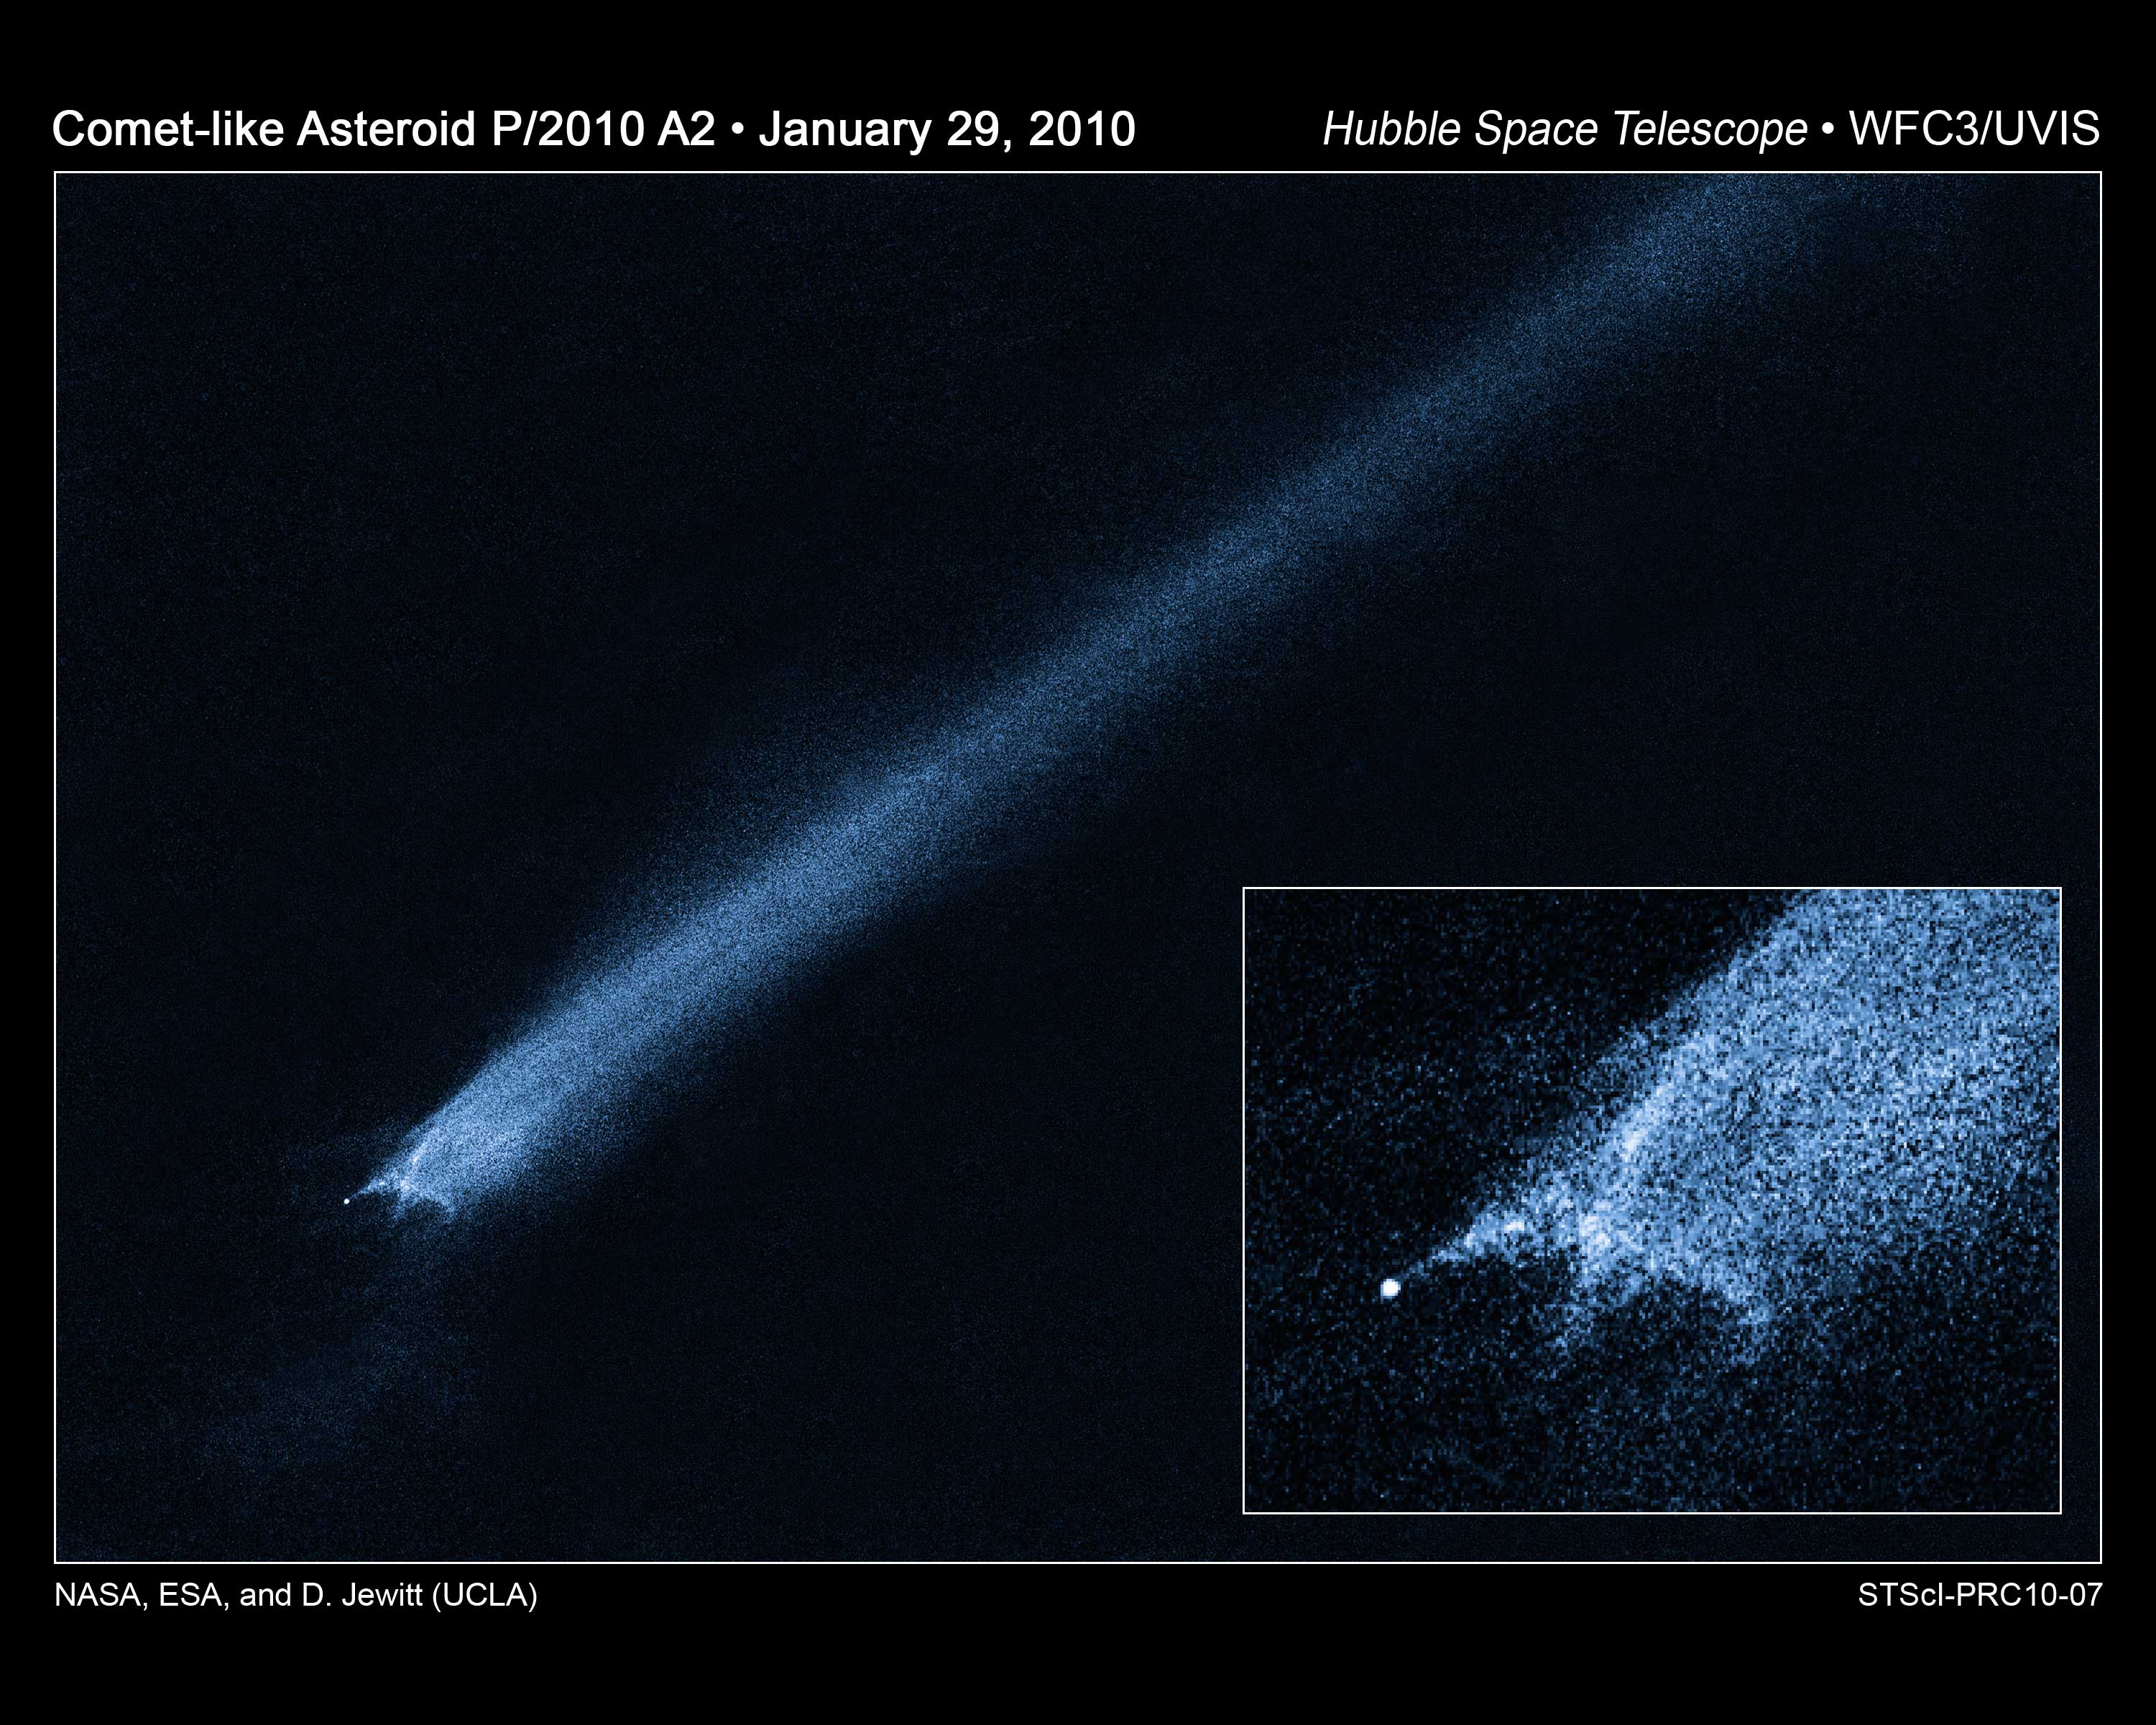 P2010 A2: Unusual Asteroid Tail Implies Powerful Collision